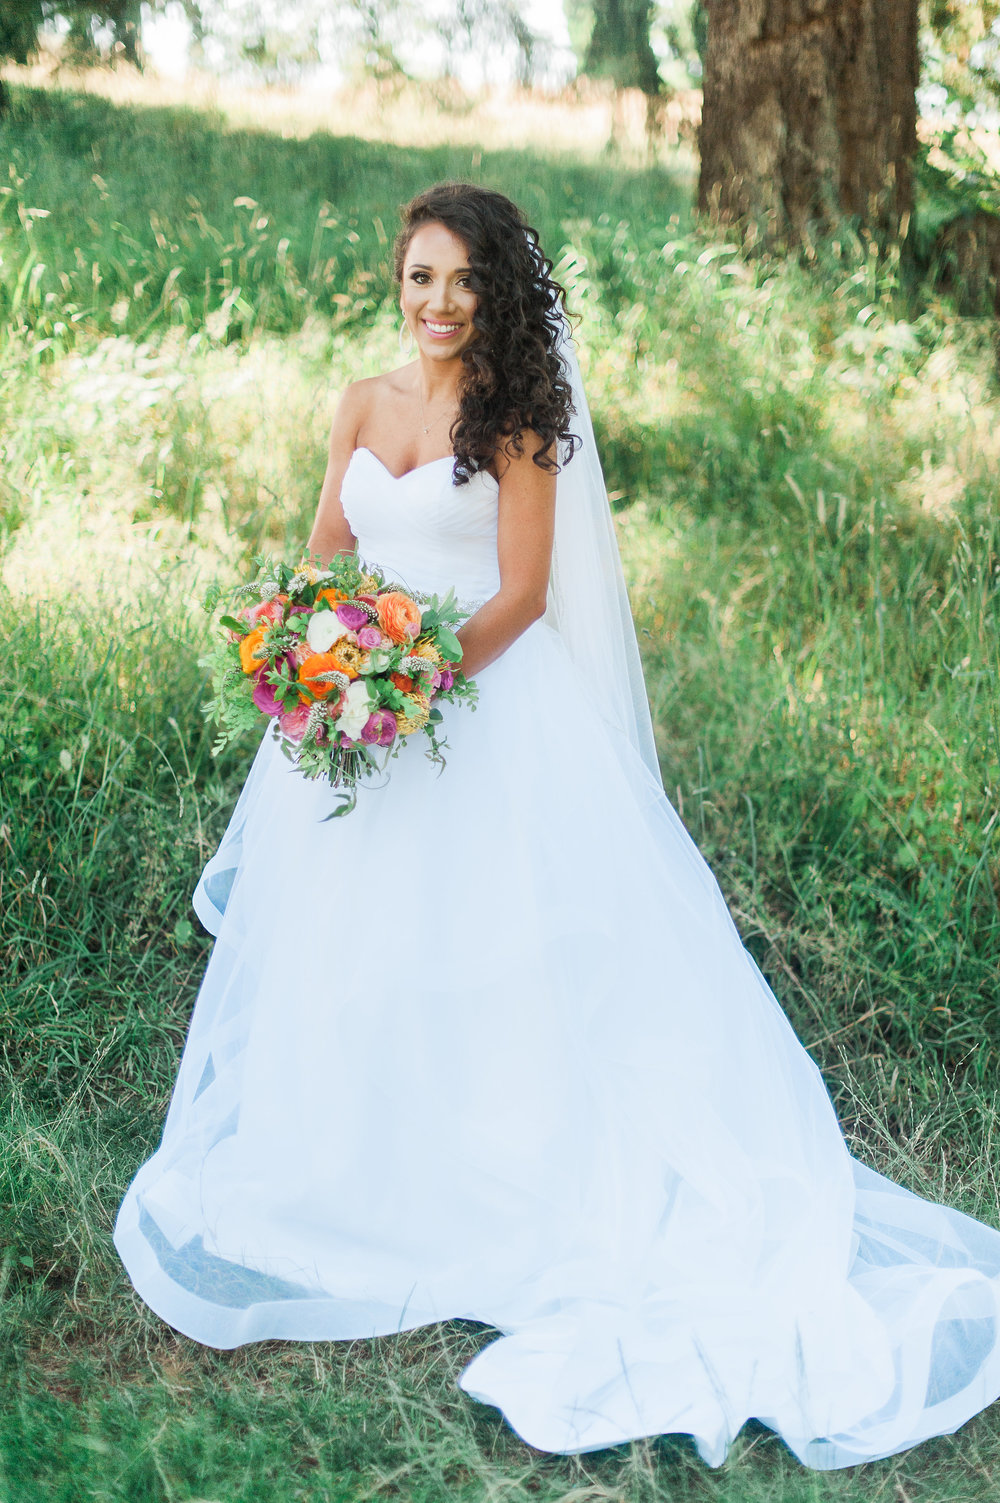 Bridalbliss.com | Portland Wedding | Oregon Event Planning and Design | Jane & Co Photography